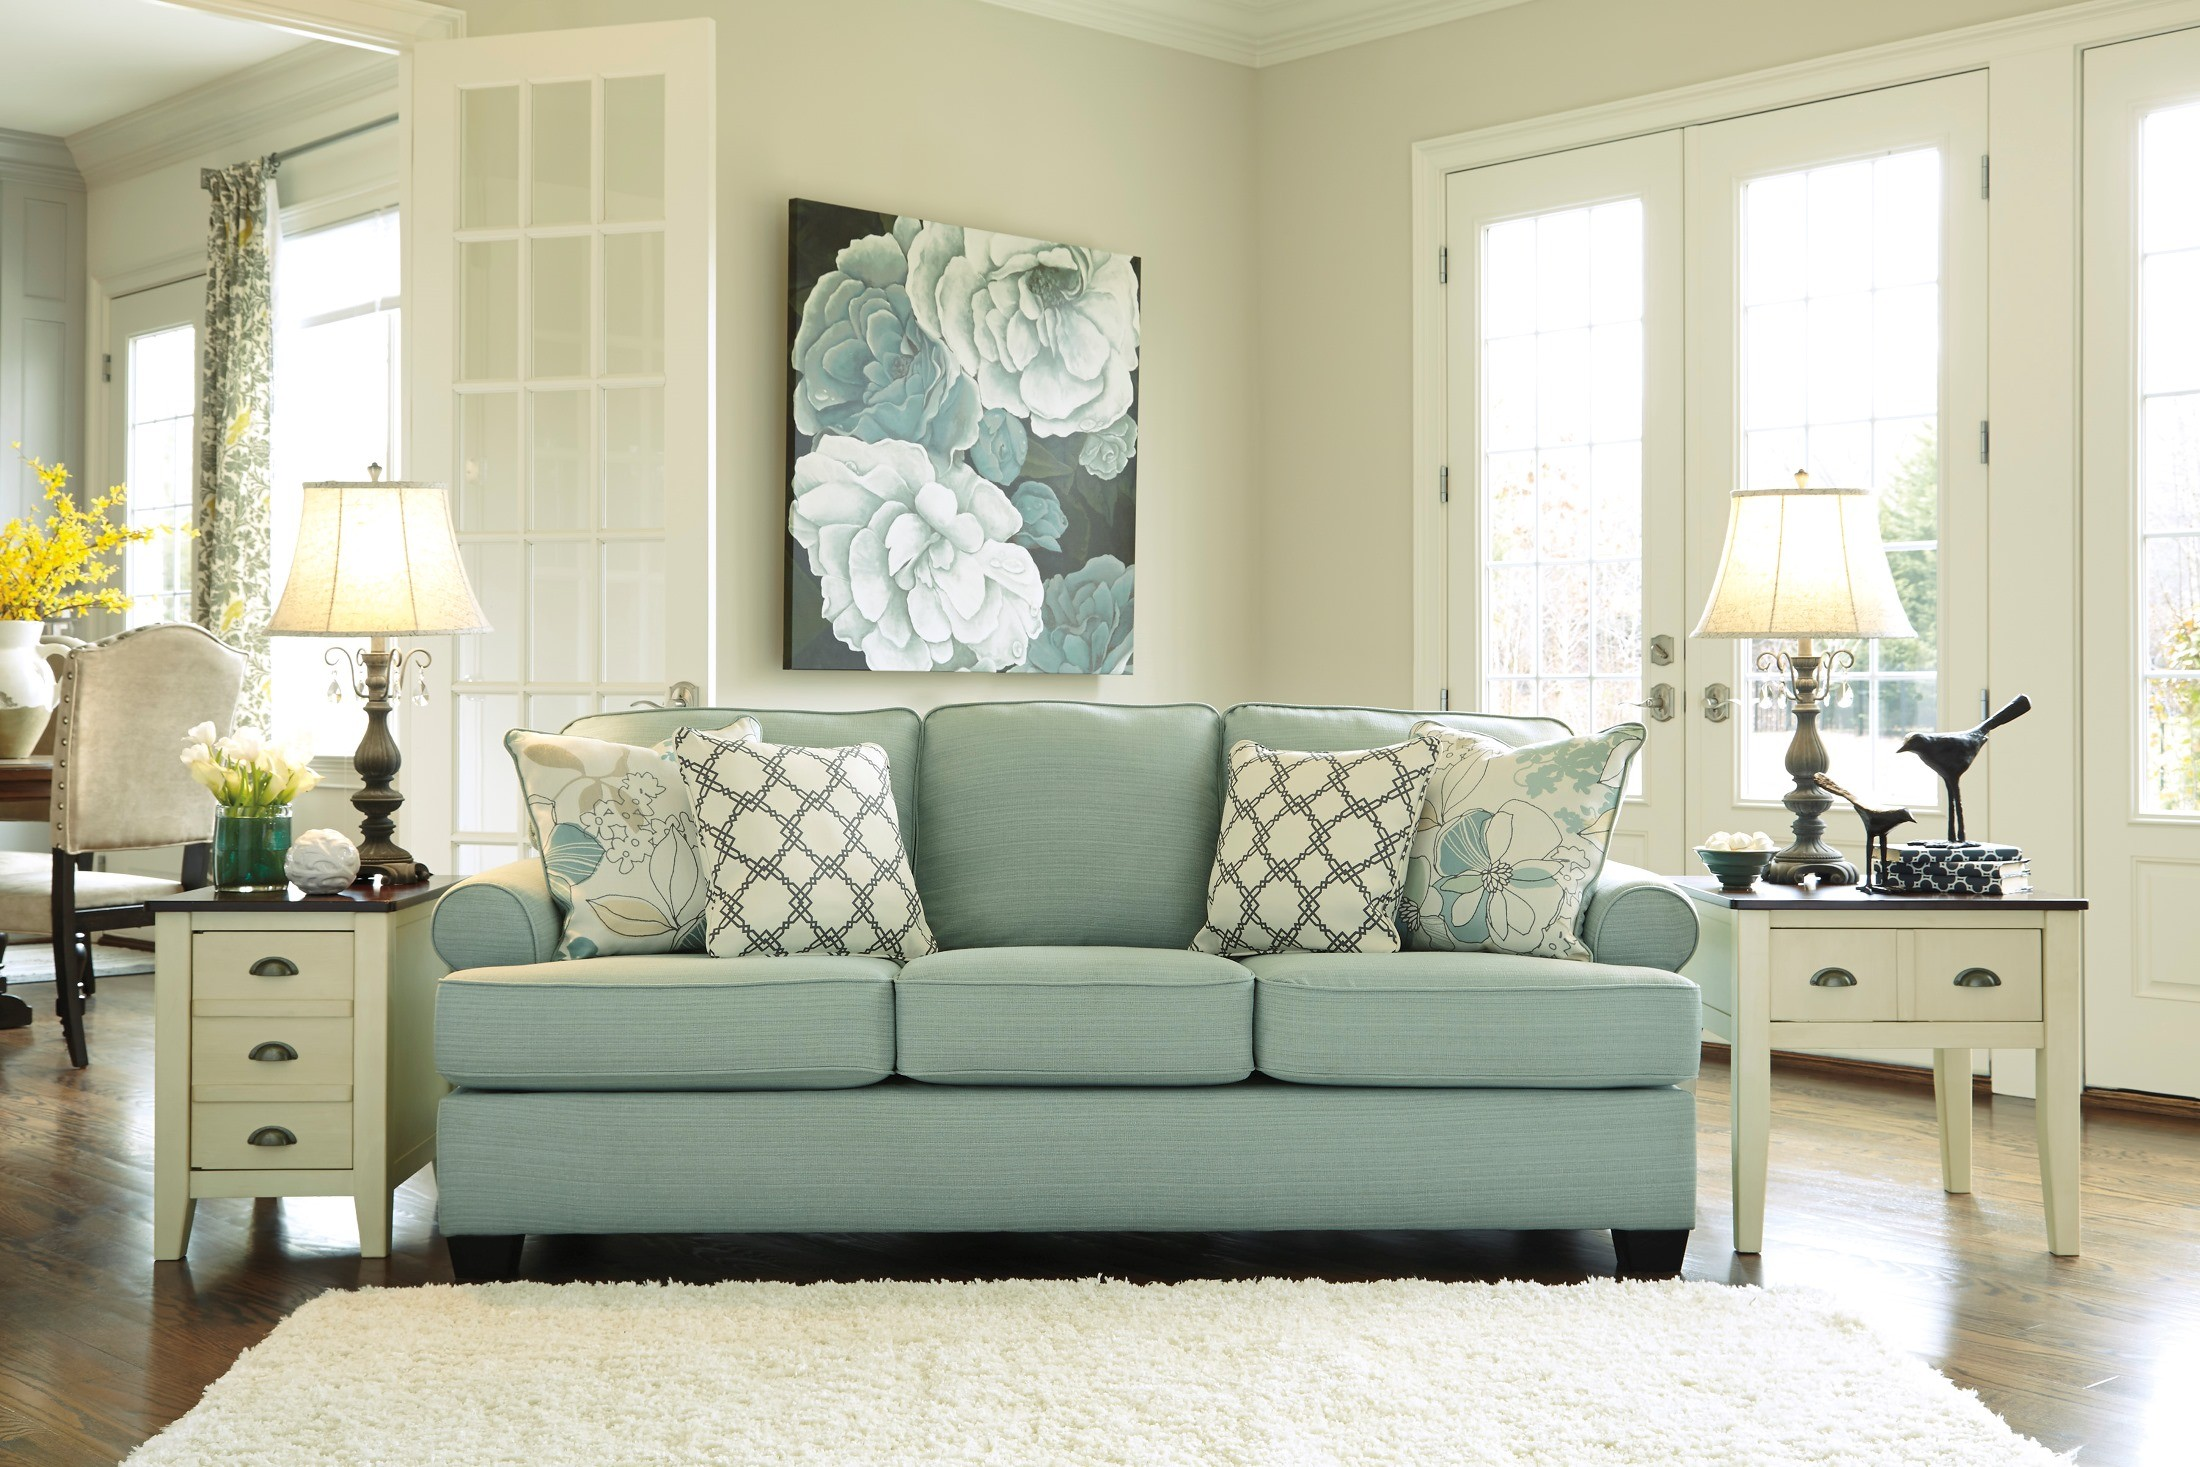 Daystar Removable Seat Cushions Sofa From Ashley Kylee Lagoon Living Room Set